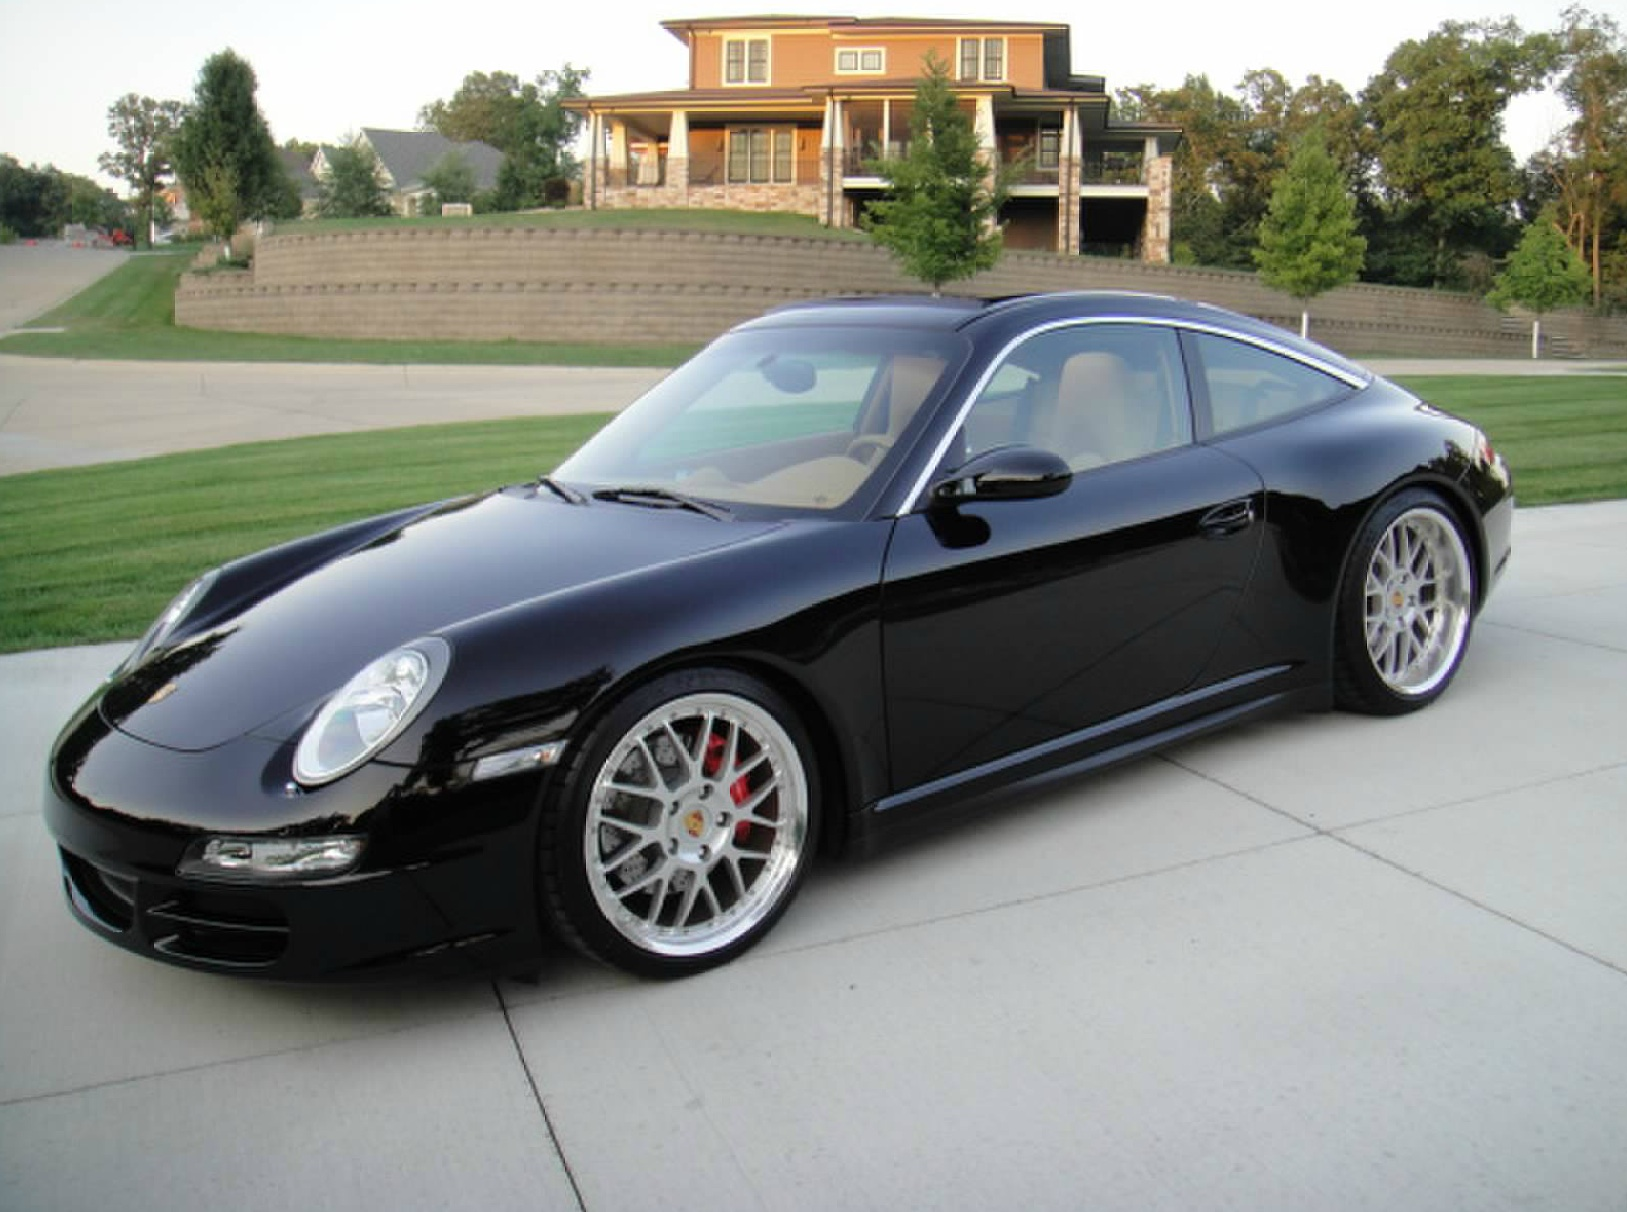 911 Targa 4s >> 2007 Porsche 911 Targa 4S – German Cars For Sale Blog